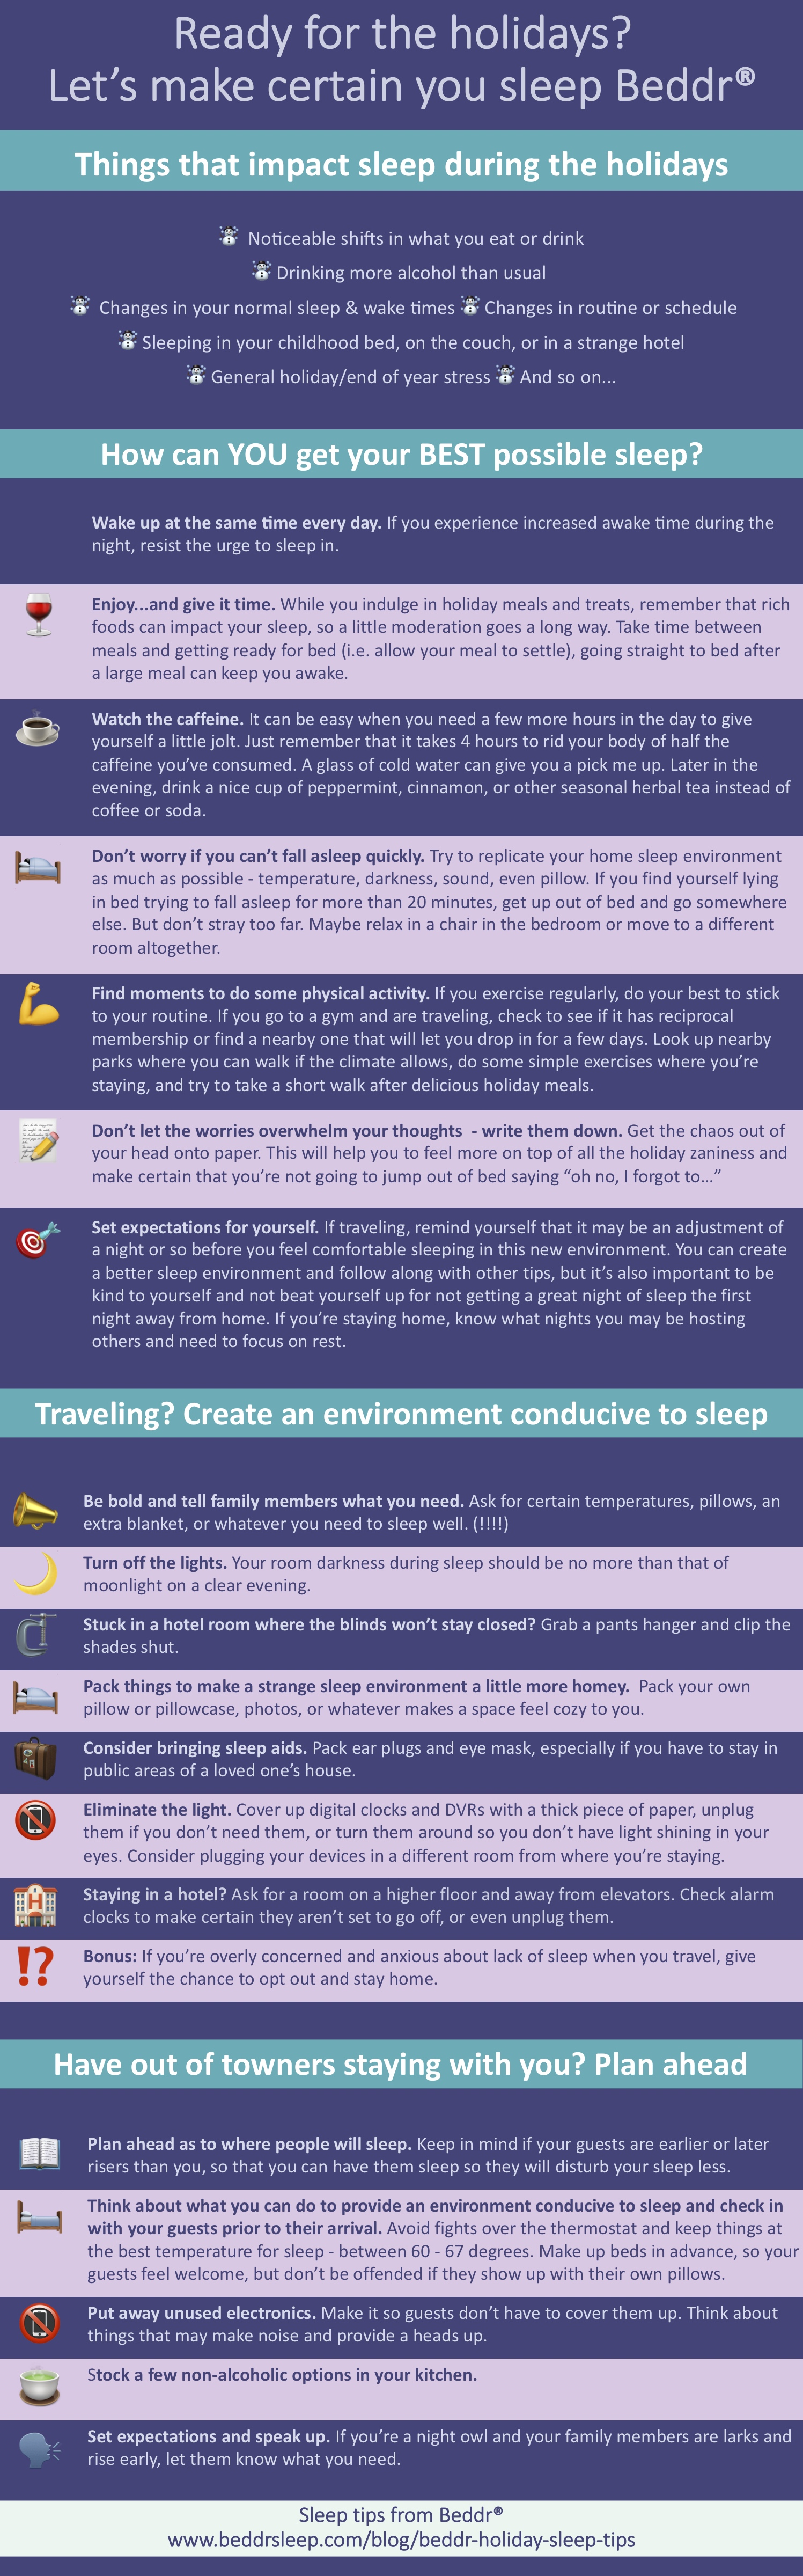 "Infographic of Holiday Sleep Tips - Ready for the holidays? Let's make certain you sleep Beddr(R). Things that impact sleep during the holidays: ☃  Noticeable shifts in what you eat or drink ☃ Drinking more alcohol than usual ︎  ☃  Changes in your normal sleep & wake times ☃ Changes in routine or schedule  ☃ Sleeping in your childhood bed, on the couch, or in a strange hotel  ☃ General holiday/end of year stress ☃ And so on...How can YOU get your BEST possible sleep? Wake up at the same time every day. If you experience increased awake time during the night, resist the urge to sleep in.  Enjoy...and give it time. While you indulge in holiday meals and treats, remember that rich foods can impact your sleep, so a little moderation goes a long way. Take time between meals and getting ready for bed (i.e. allow your meal to settle), going straight to bed after a large meal can keep you awake.  Watch the caffeine. It can be easy when you need a few more hours in the day to give yourself a little jolt. Just remember that it takes 4 hours to rid your body of half the caffeine you've consumed. A glass of cold water can give you a pick me up. Later in the evening, drink a nice cup of peppermint, cinnamon, or other seasonal herbal tea instead of coffee or soda.  Don't worry if you can't fall asleep quickly. Try to replicate your home sleep environment as much as possible - temperature, darkness, sound, even pillow. If you find yourself lying in bed trying to fall asleep for more than 20 minutes, get up out of bed and go somewhere else. But don't stray too far. Maybe relax in a chair in the bedroom or move to a different room altogether.   Find moments to do some physical activity. If you exercise regularly, do your best to stick to your routine. If you go to a gym and are traveling, check to see if it has reciprocal membership or find a nearby one that will let you drop in for a few days. Look up nearby parks where you can walk if the climate allows, do some simple exercises where you're staying, and try to take a short walk after delicious holiday meals.   Don't let the worries overwhelm your thoughts  - write them down. Get the chaos out of your head onto paper. This will help you to feel more on top of all the holiday zaniness and make certain that you're not going to jump out of bed saying ""oh no, I forgot to…""  Set expectations for yourself. If traveling, remind yourself that it may be an adjustment of a night or so before you feel comfortable sleeping in this new environment. You can create a better sleep environment and follow along with other tips, but it's also important to be kind to yourself and not beat yourself up for not getting a great night of sleep the first night away from home. If you're staying home, know what nights you may be hosting others and need to focus on rest. Traveling? Create an environment conducive to sleep. Be bold and tell family members what you need. Ask for certain temperatures, pillows, an extra blanket, or whatever you need to sleep well. (!!!!)   Turn off the lights. Your room darkness during sleep should be no more than that of moonlight on a clear evening.  Stuck in a hotel room where the blinds won't stay closed? Grab a pants hanger and clip the shades shut.  Pack things to make a strange sleep environment a little more homey.  Pack your own pillow or pillowcase, photos, or whatever makes a space feel cozy to you.  Consider bringing sleep aids. Pack ear plugs and eye mask, especially if you have to stay in public areas of a loved one's house.  Eliminate the light. Cover up digital clocks and DVRs with a thick piece of paper, unplug them if you don't need them, or turn them around so you don't have light shining in your eyes. Consider plugging your devices in a different room from where you're staying.  Staying in a hotel? Ask for a room on a higher floor and away from elevators. Check alarm clocks to make certain they aren't set to go off, or even unplug them.  Bonus: If you're overly concerned and anxious about lack of sleep when you travel, give yourself the chance to opt out and stay home. Have out of towners staying with you? Plan ahead. Plan ahead as to where people will sleep. Keep in mind if your guests are earlier or later risers than you, so that you can have them sleep so they will disturb your sleep less.   Think about what you can do to provide an environment conducive to sleep and check in with your guests prior to their arrival. Avoid fights over the thermostat and keep things at the best temperature for sleep - between 60 - 67 degrees. Make up beds in advance, so your guests feel welcome, but don't be offended if they show up with their own pillows.  Put away unused electronics. Make it so guests don't have to cover them up. Think about things that may make noise and provide a heads up.  Stock a few non-alcoholic options in your kitchen. Set expectations and speak up. If you're a night owl and your family members are larks and rise early, let them know what you need."